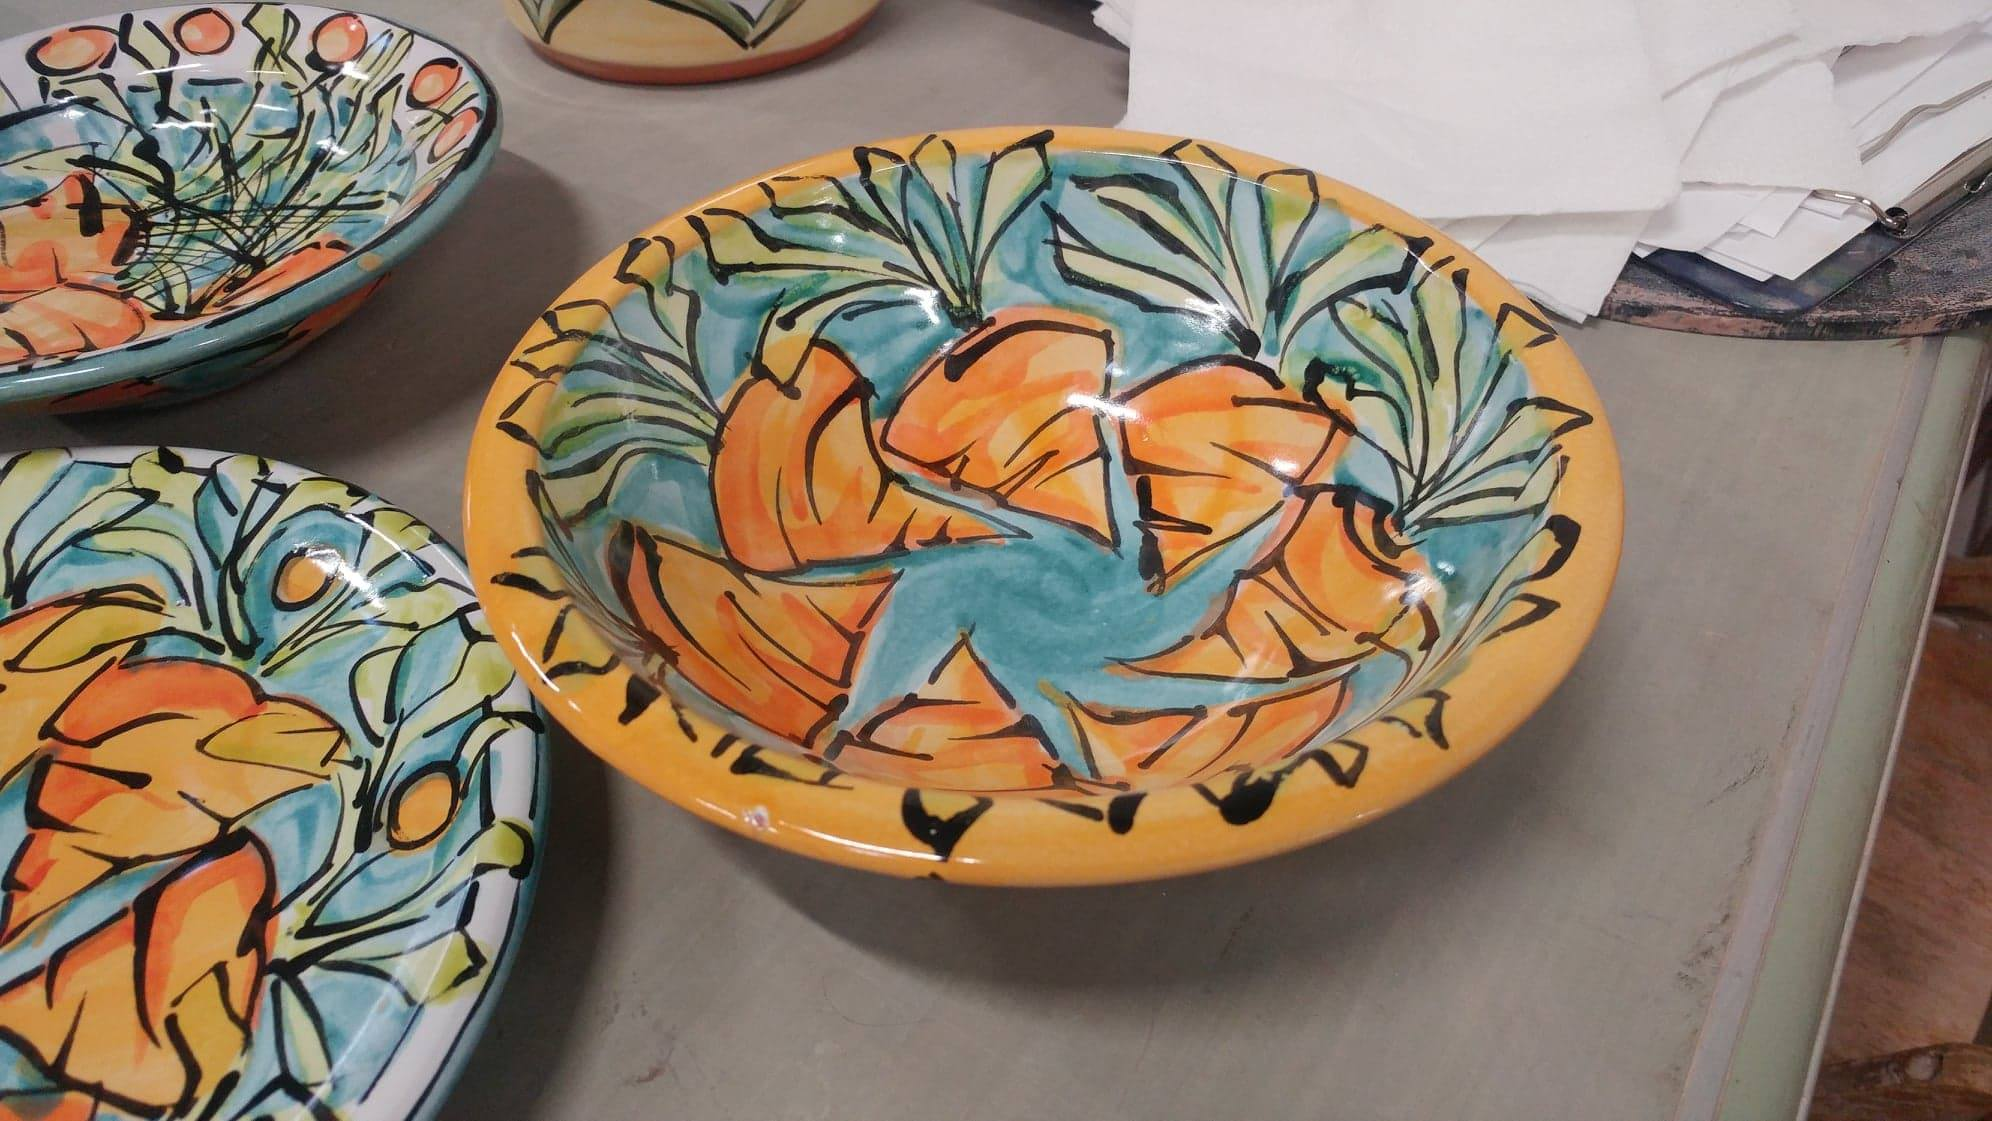 duluth pottery artist showcase